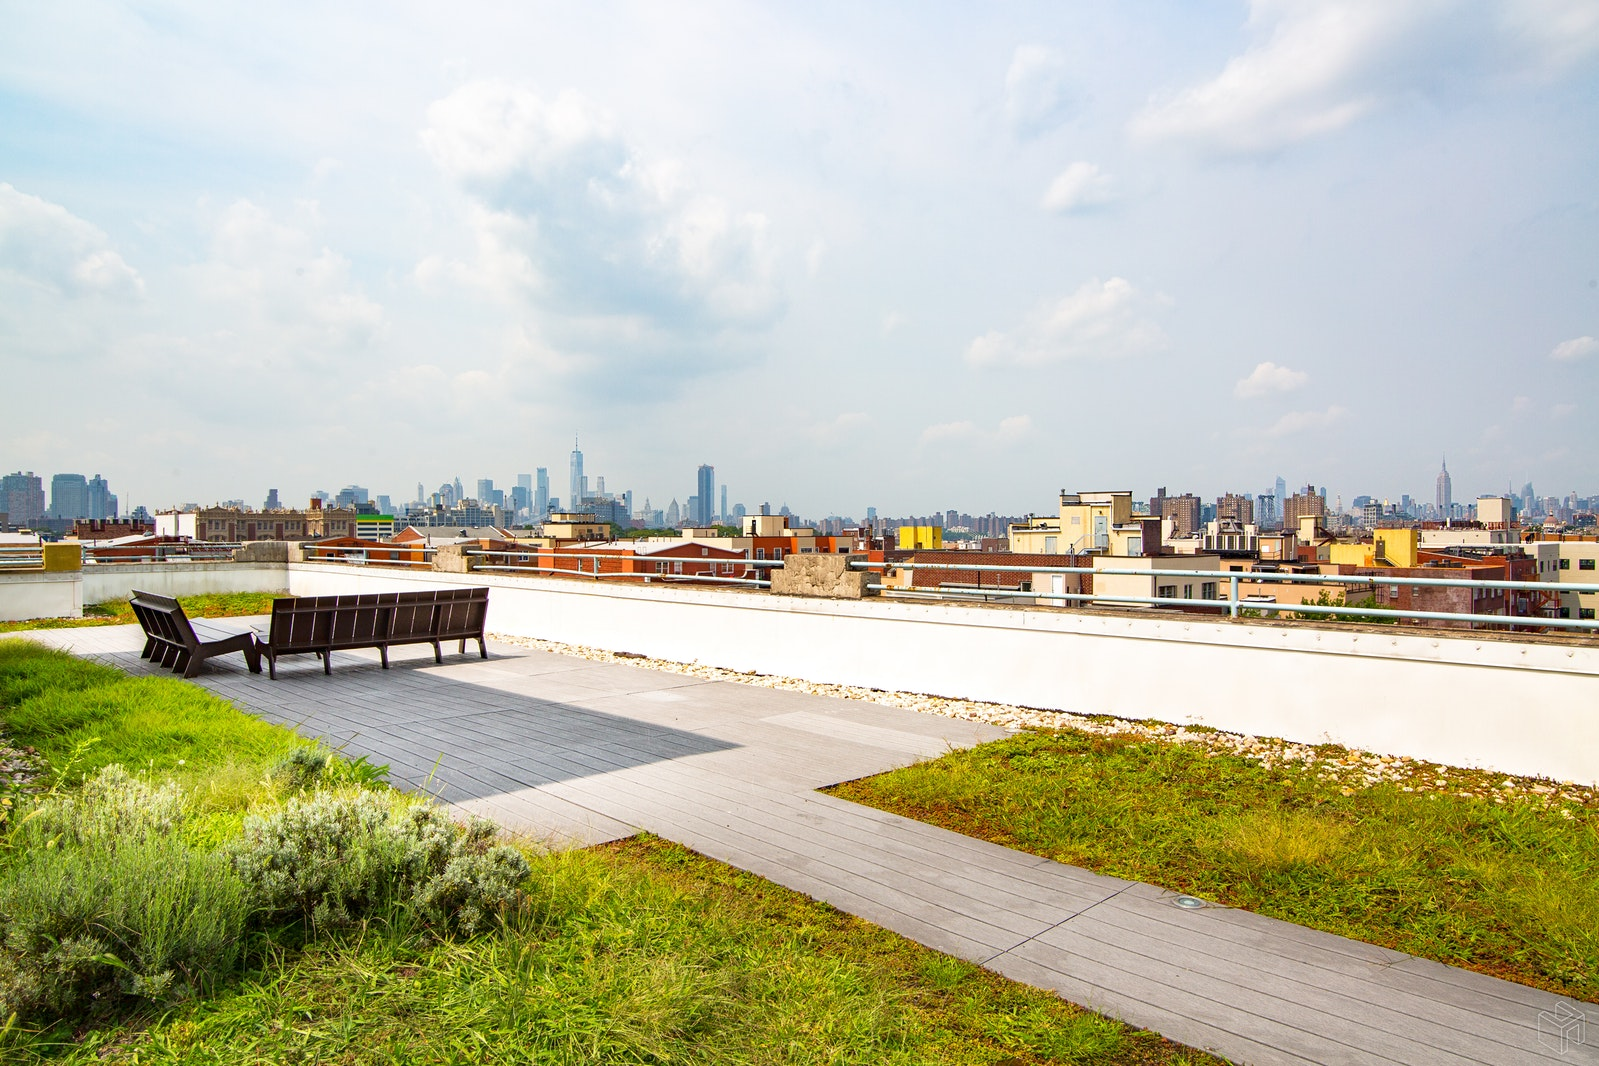 689 Myrtle Avenue 2a, Clinton Hill, Brooklyn, NY, 11205, $798,000, Sold Property, Halstead Real Estate, Photo 9